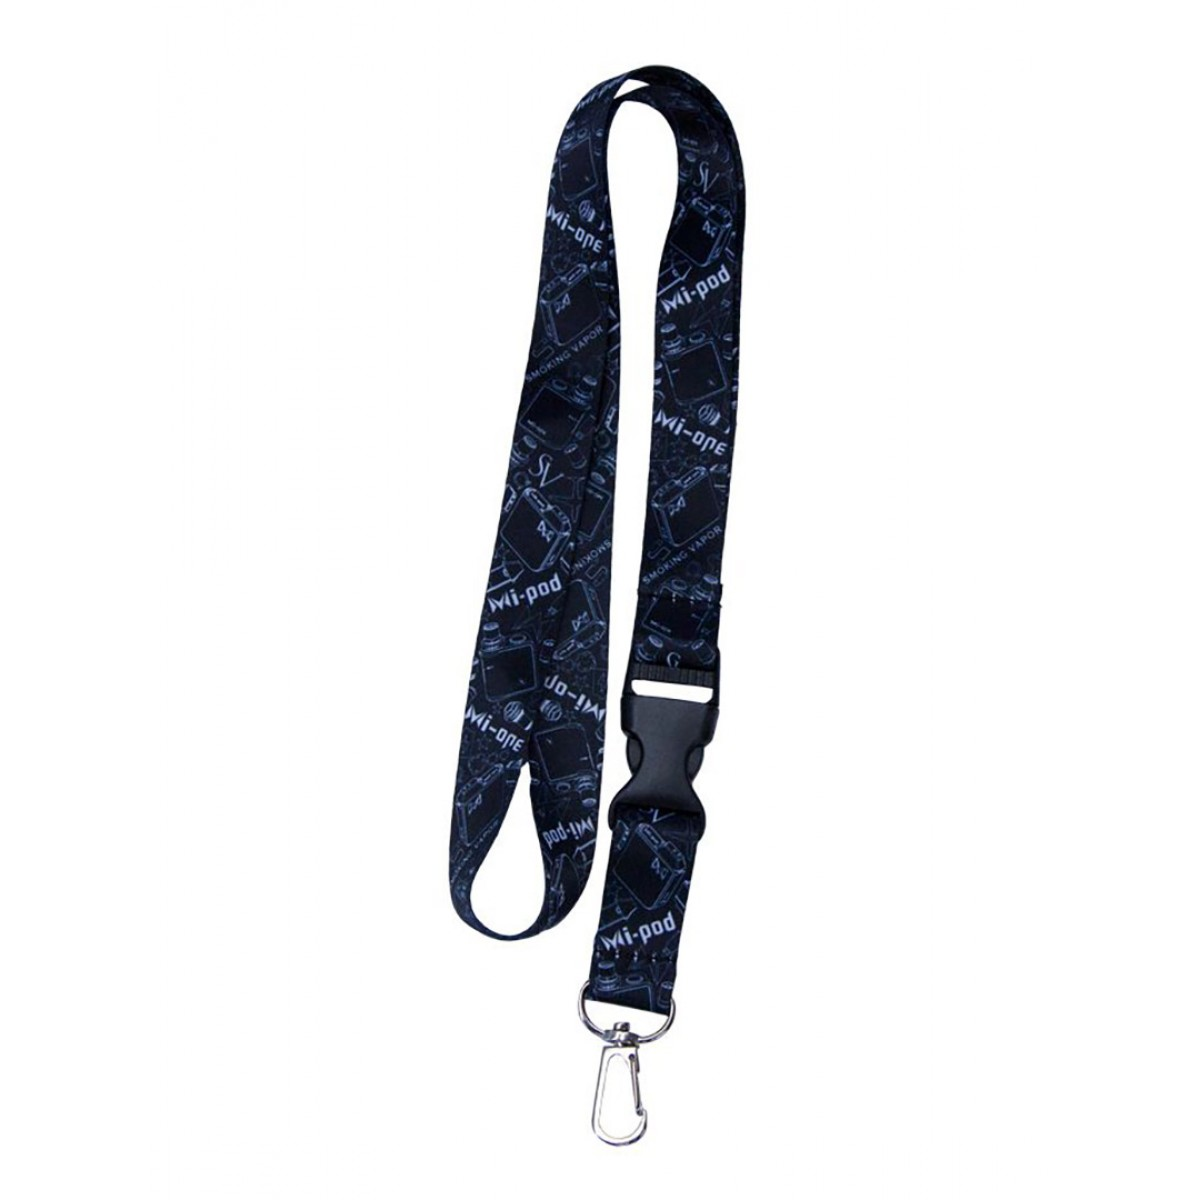 MI-POD & MI-ONE LANYARD BY MI-ONE BRANDS